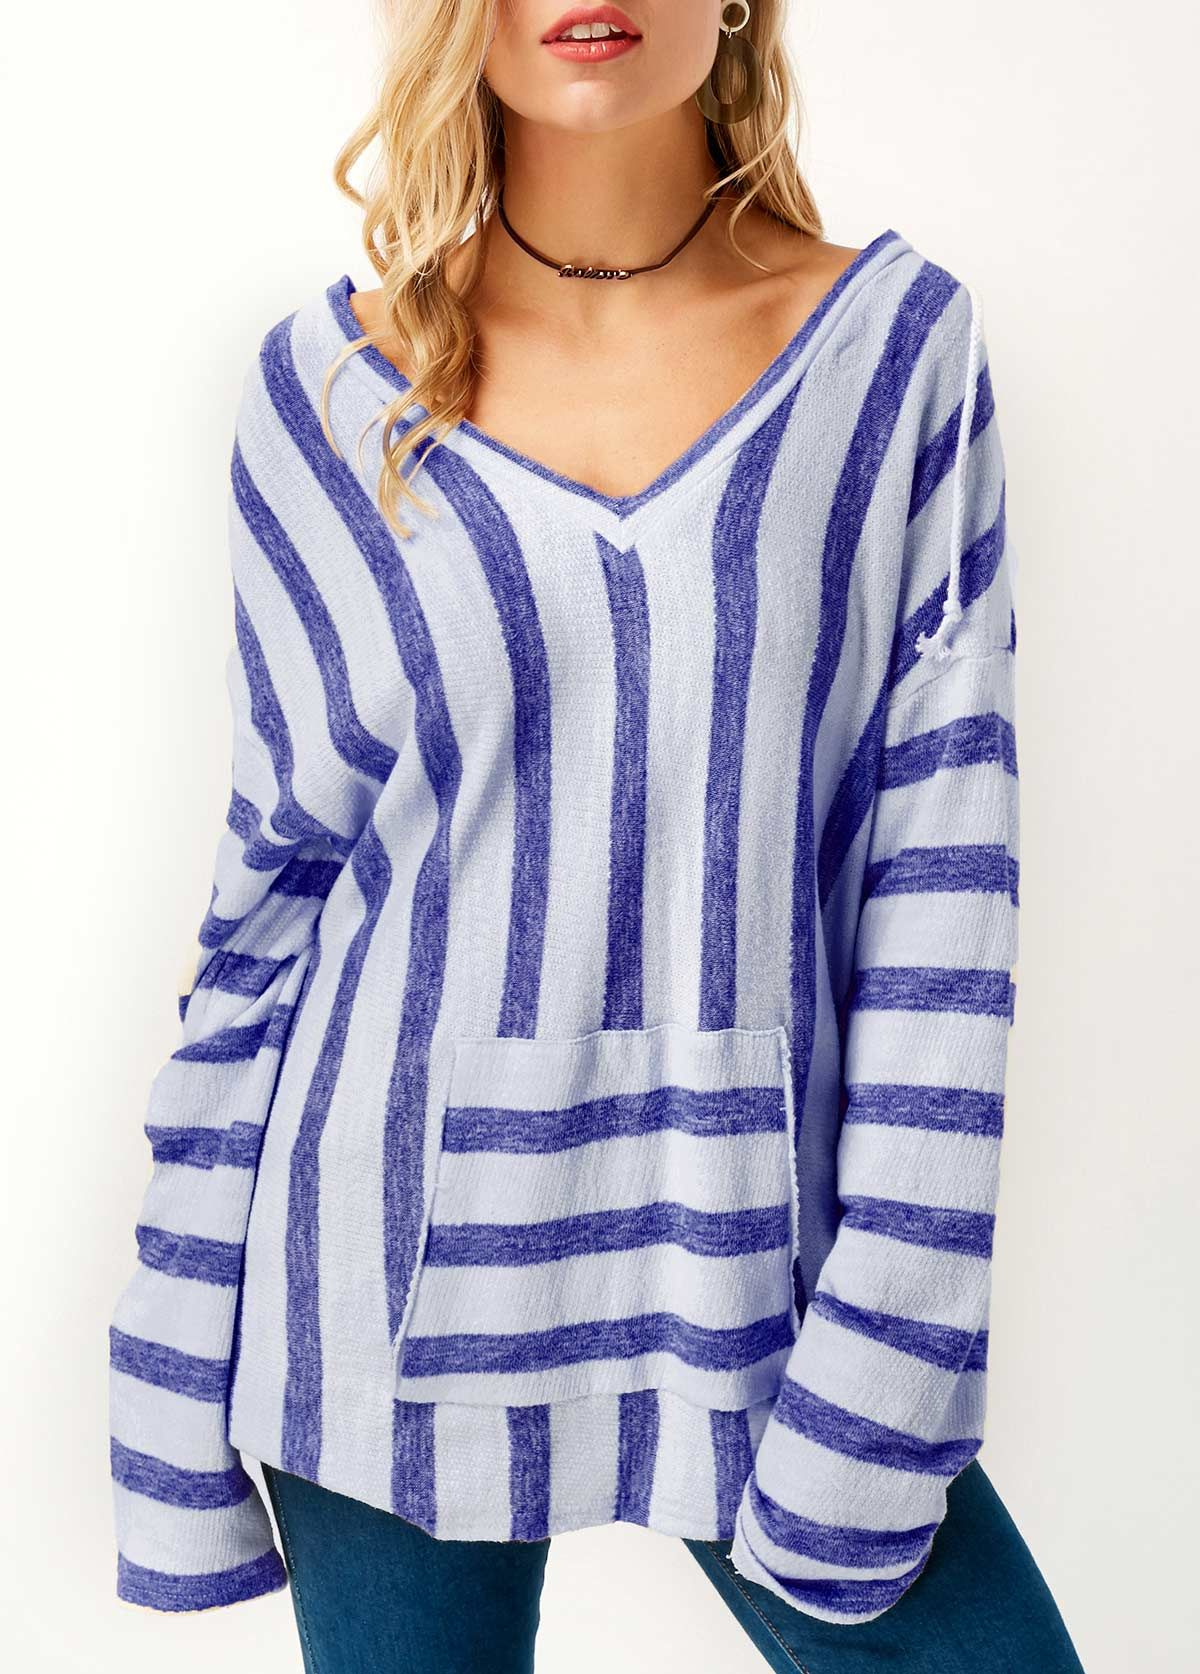 Long Sleeve Striped Hooded Collar Blue T Shirt Stuff To Buy